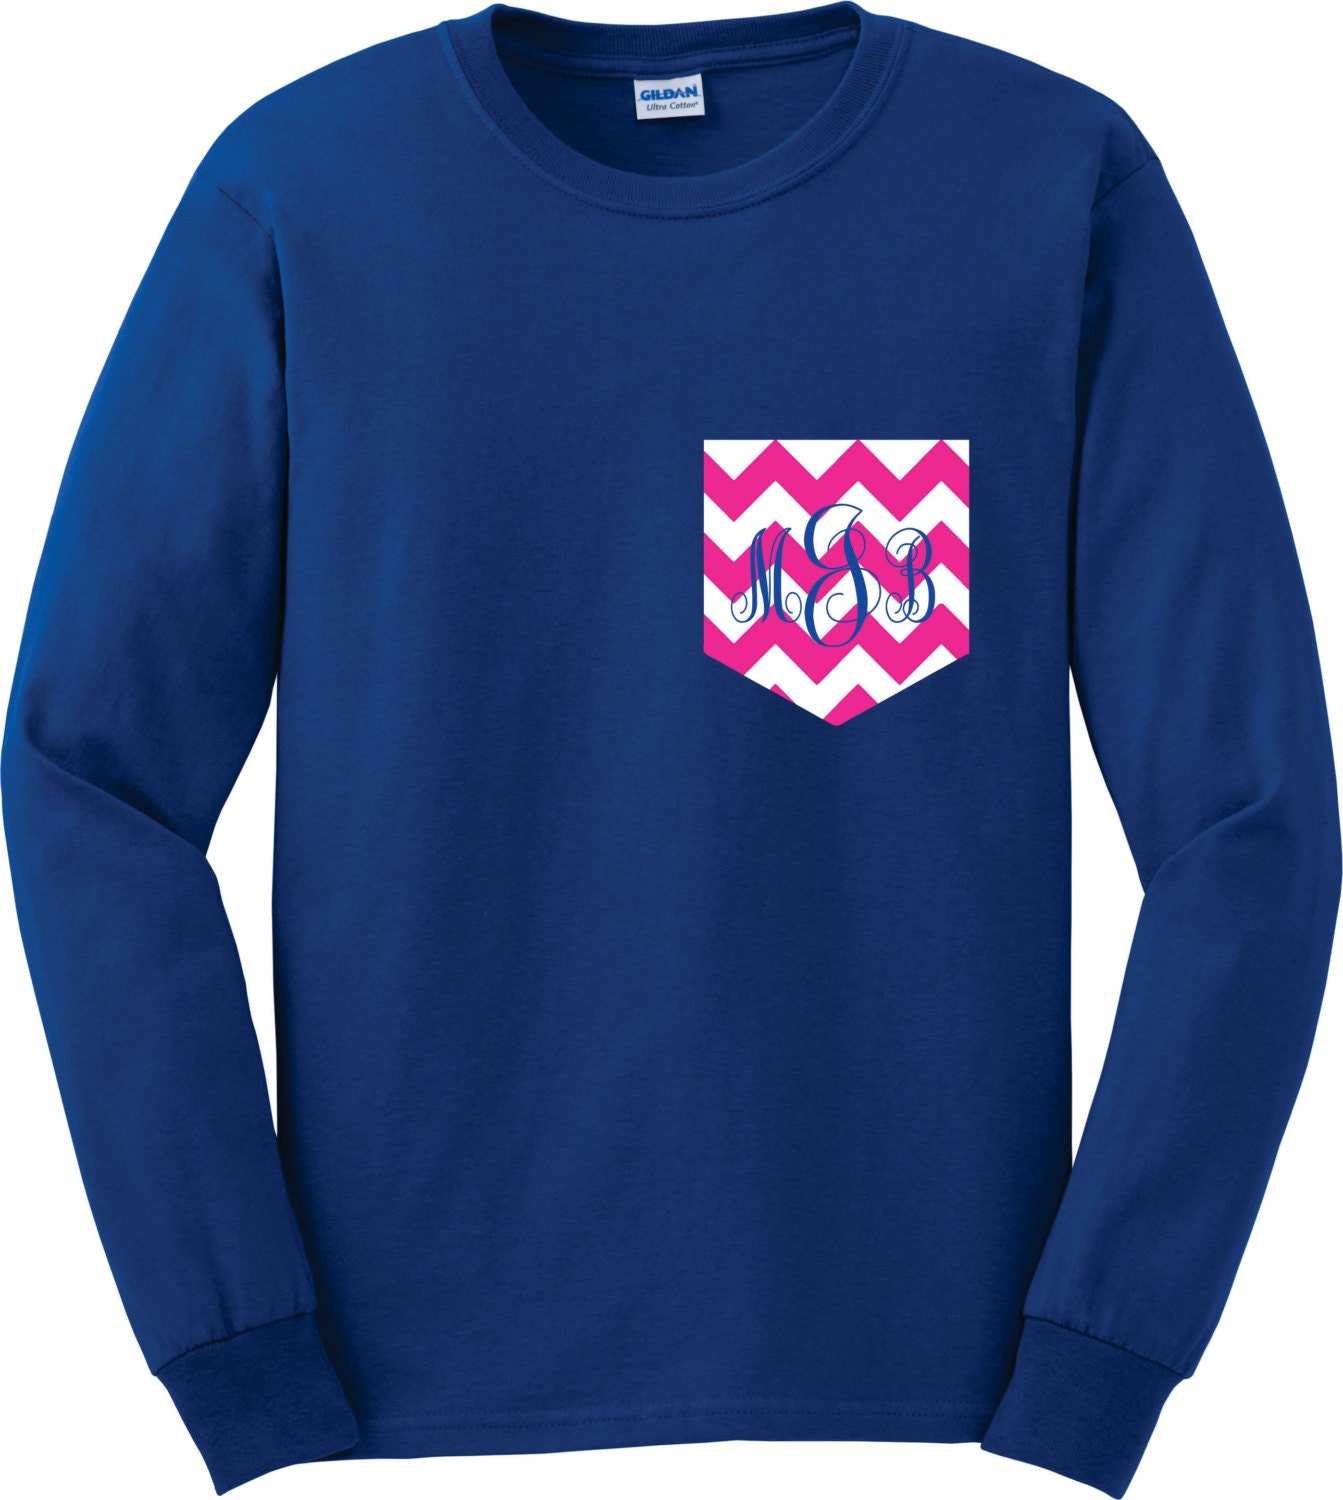 Design your own t-shirt long sleeve -  Monogram Longsleeve Shirt Personalized Teen Girl Gifts Monogram Pocket Tee Chevron Pocket T Shirt Tshirt Monogram Zoom